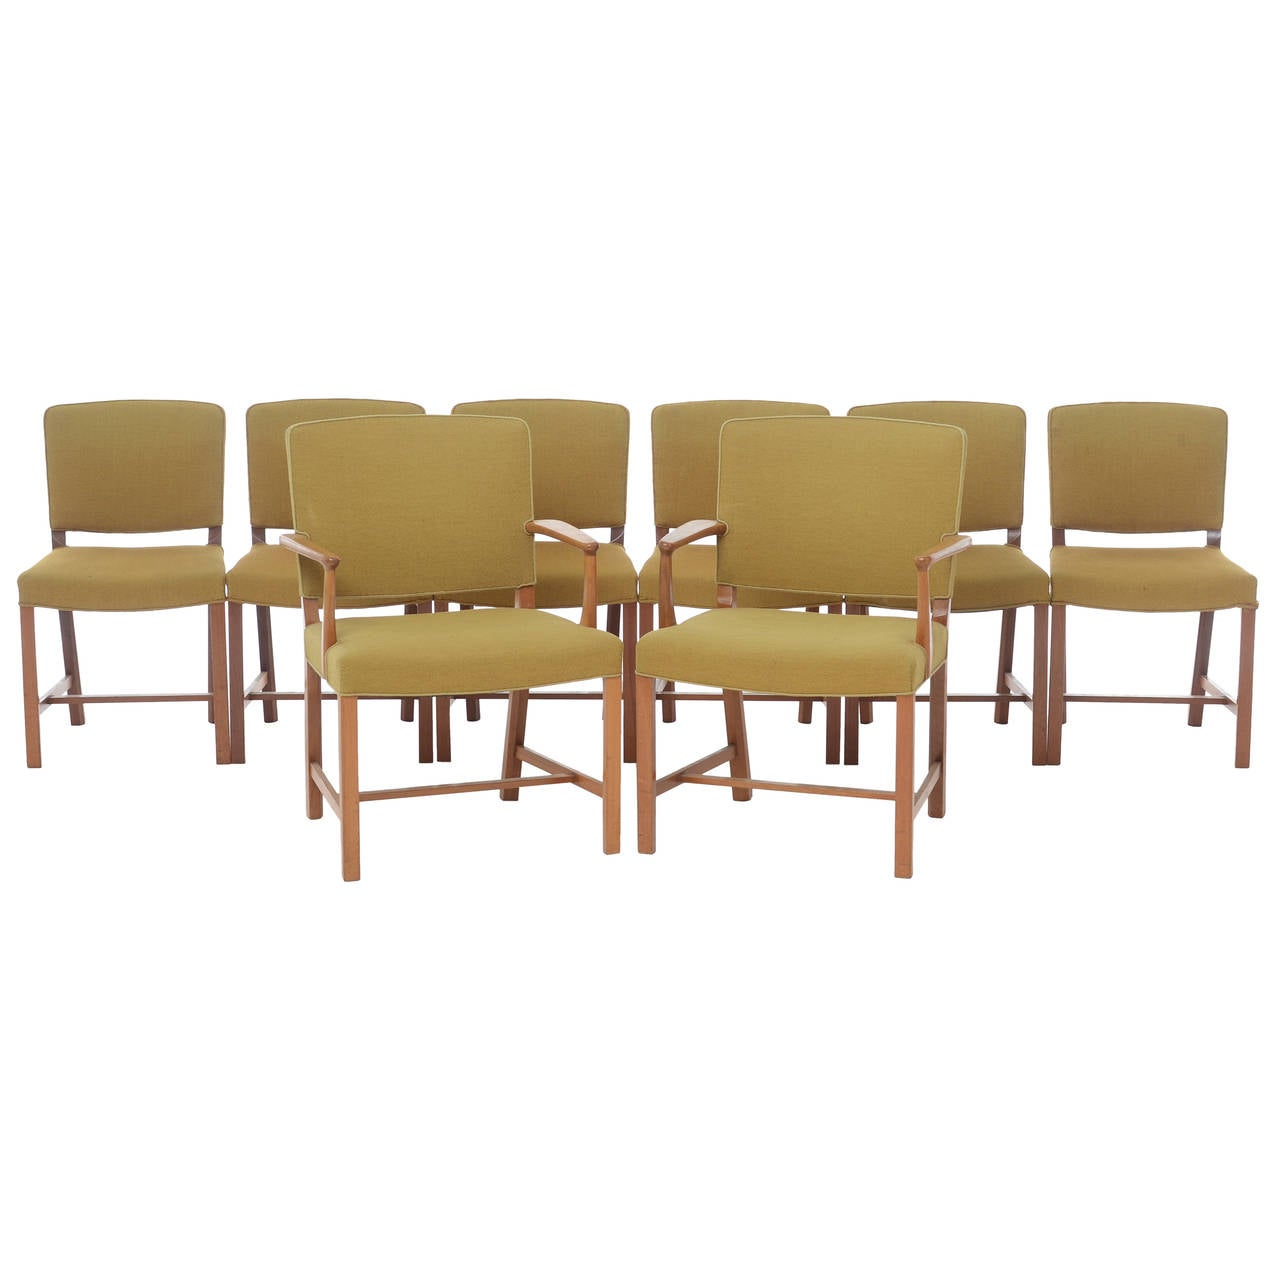 Mid century danish modern mahogany dining chairs set of 8 for Dining room furniture modern